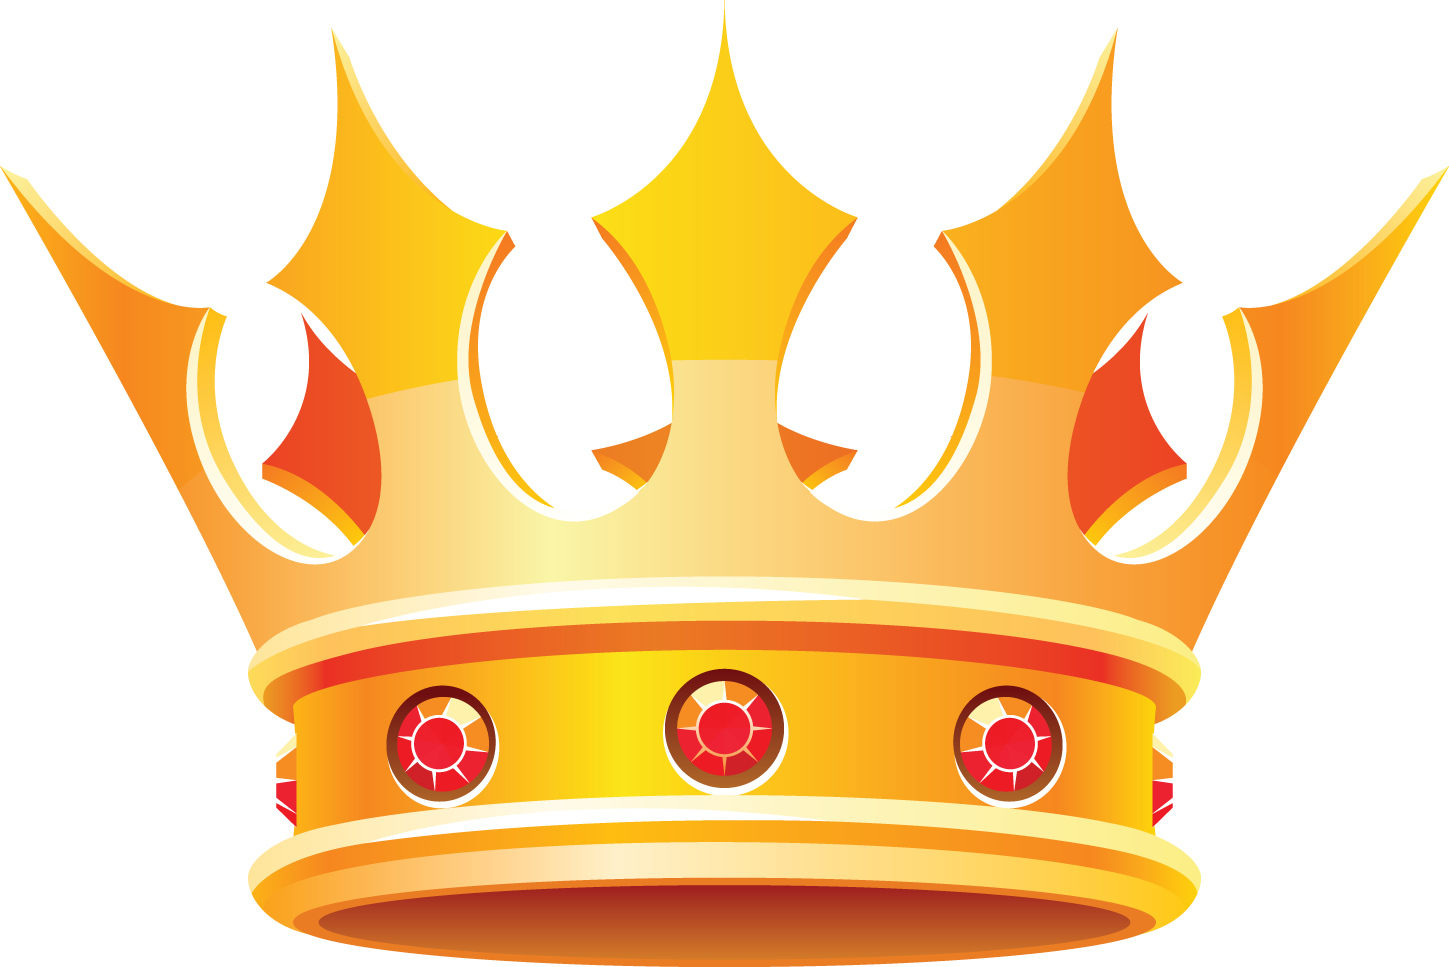 Burger king crown clipart svg royalty free download King crown png clipart - ClipartFest svg royalty free download